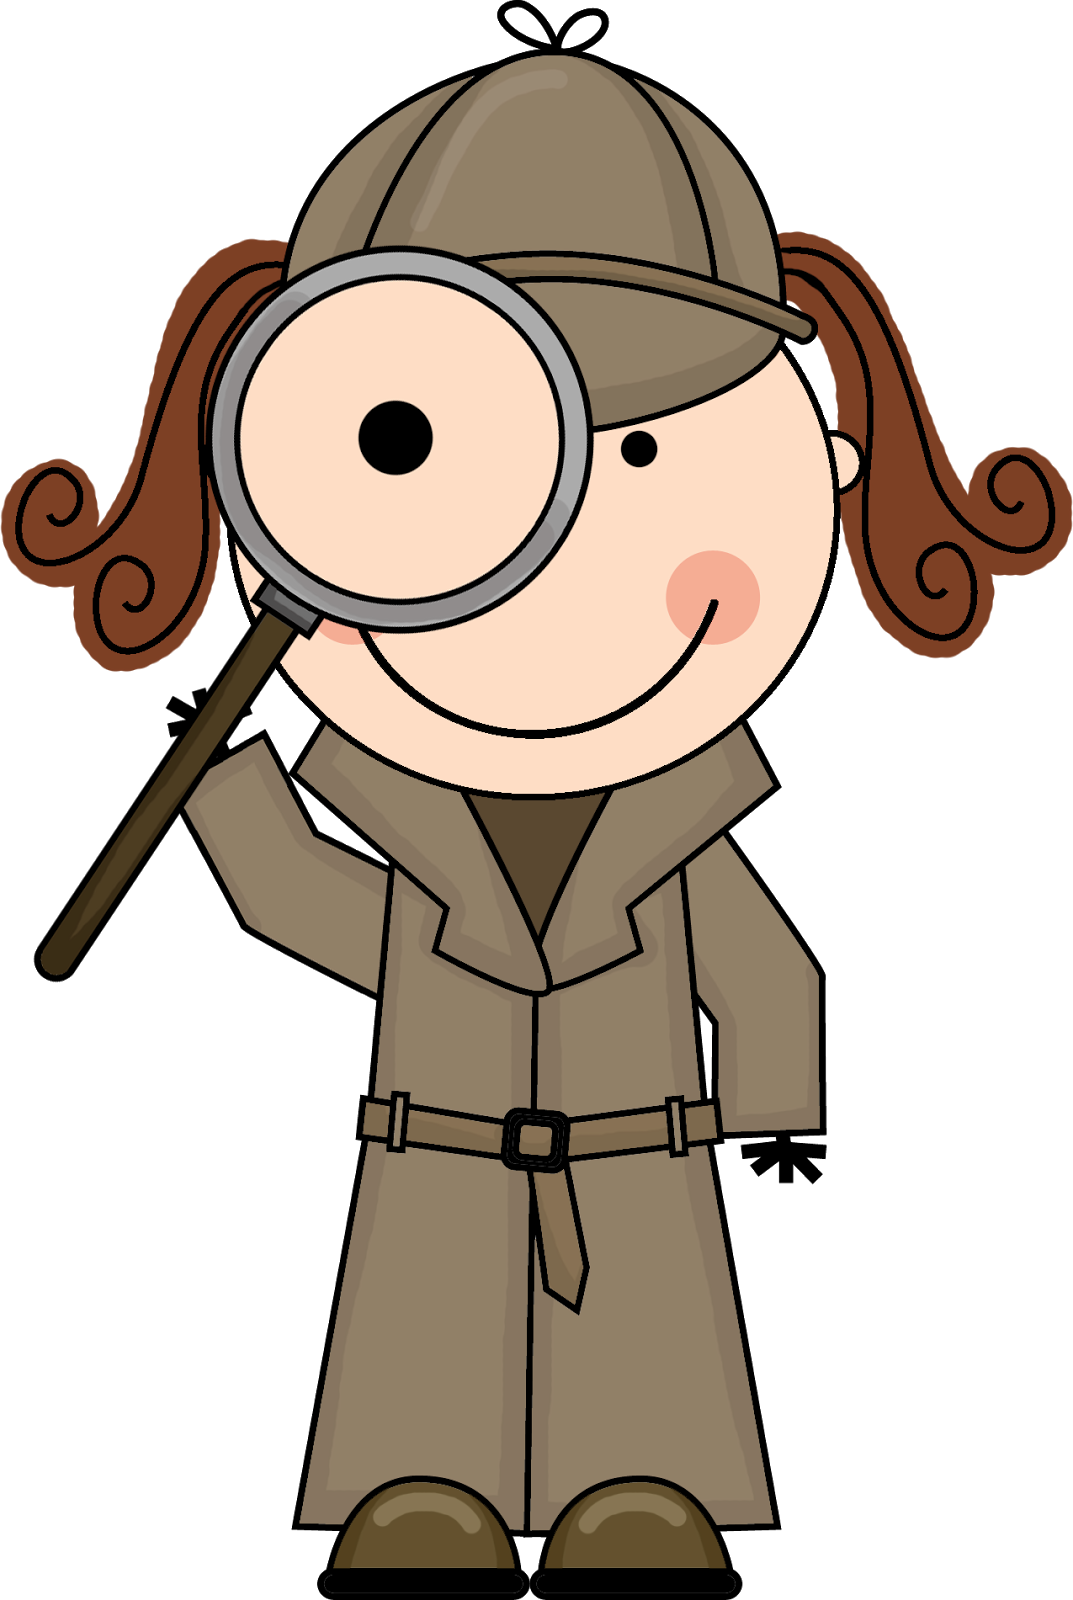 Girl Detective with Magnifying Glass | VBS | Pinterest | Clip art ...